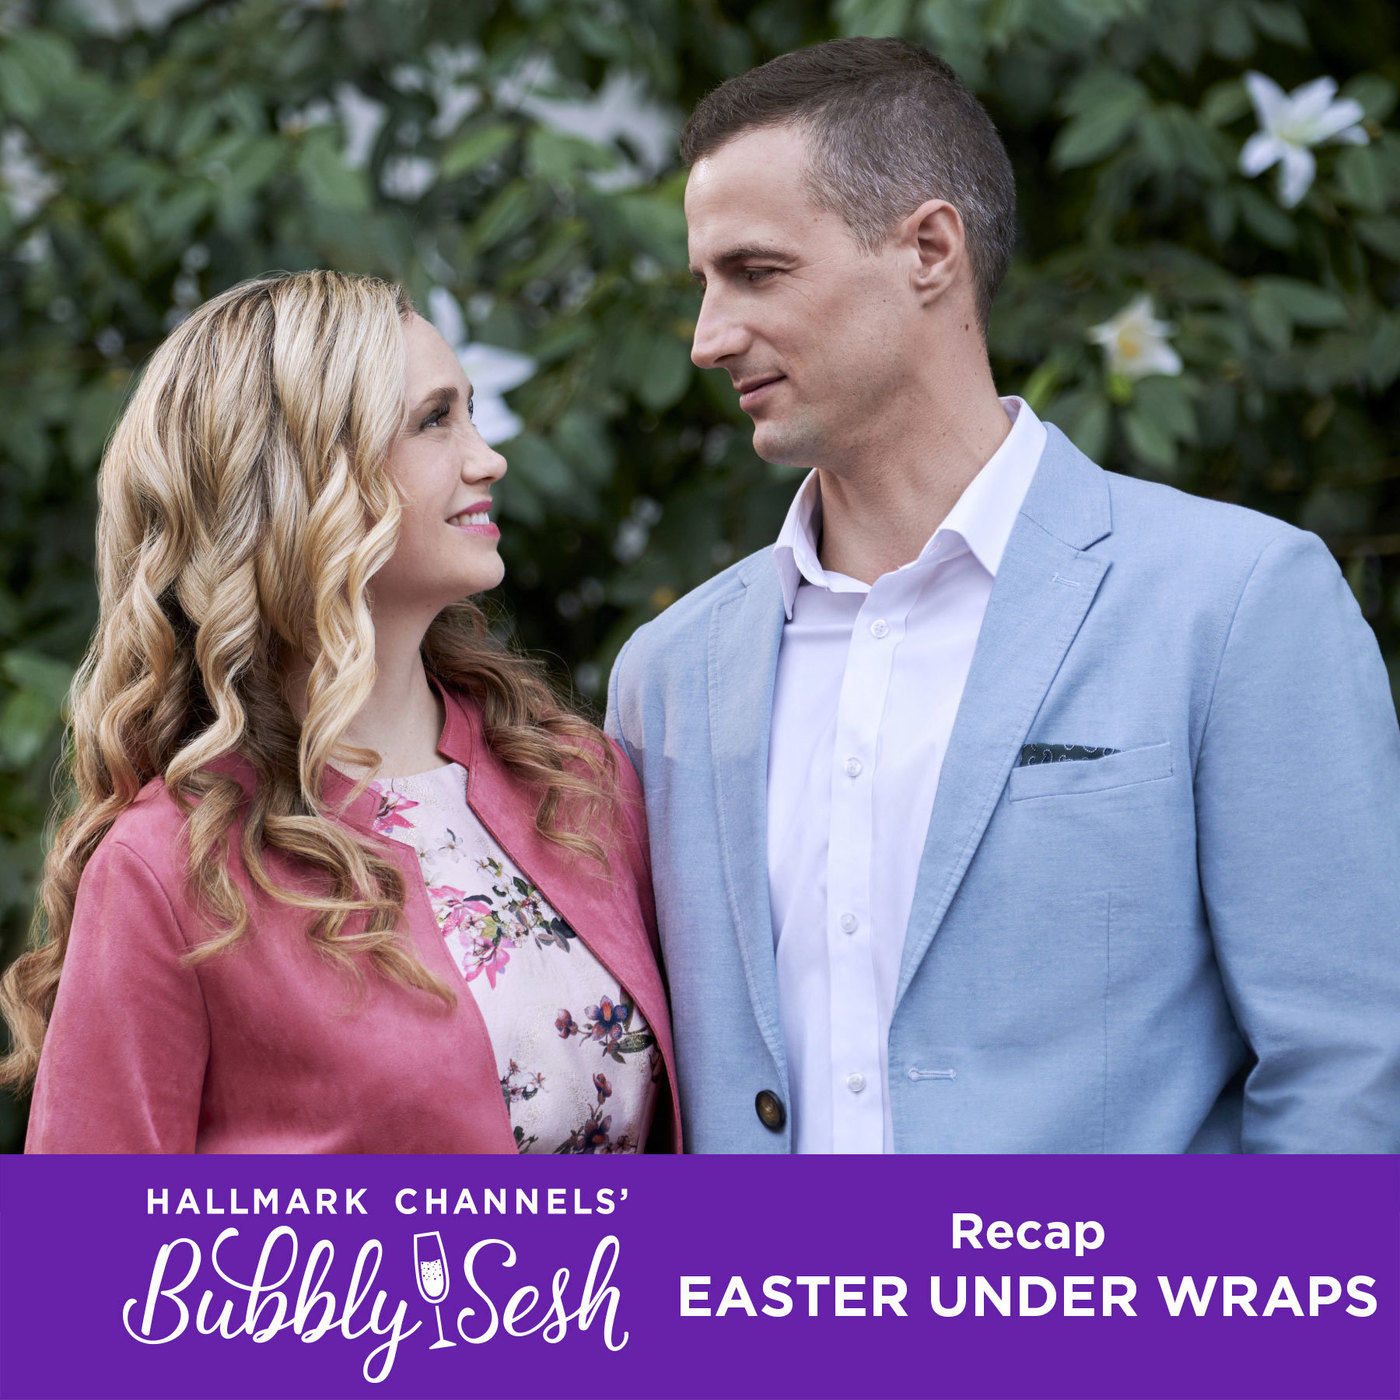 Easter Under Wraps Recap